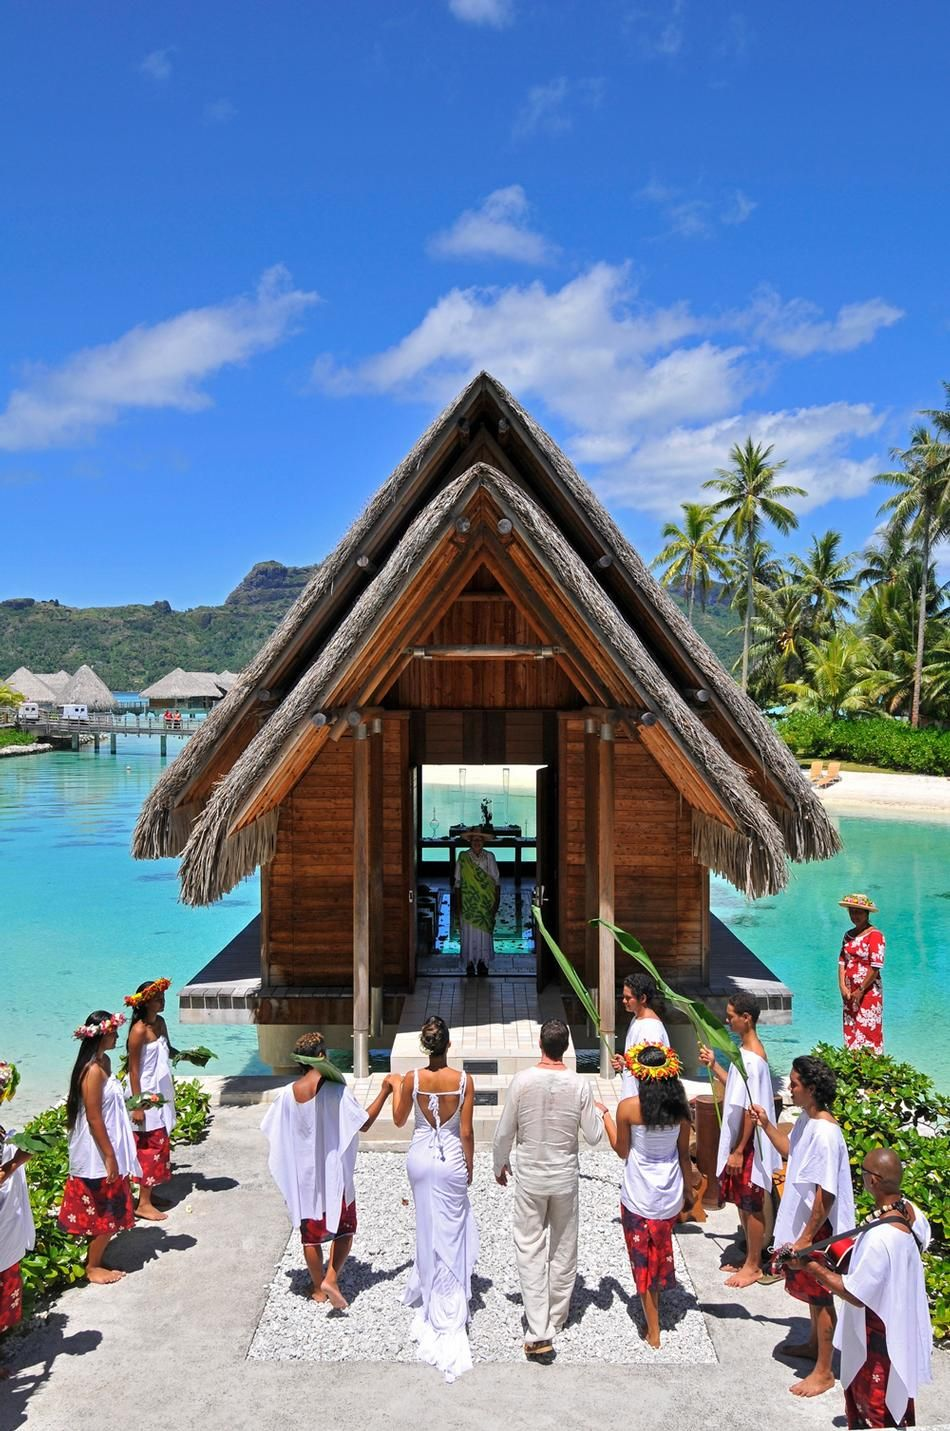 Overwater Wedding Chapel Bora Call Nikki At Travel Vision 1 405 334 6330 To Plan Your Destination In